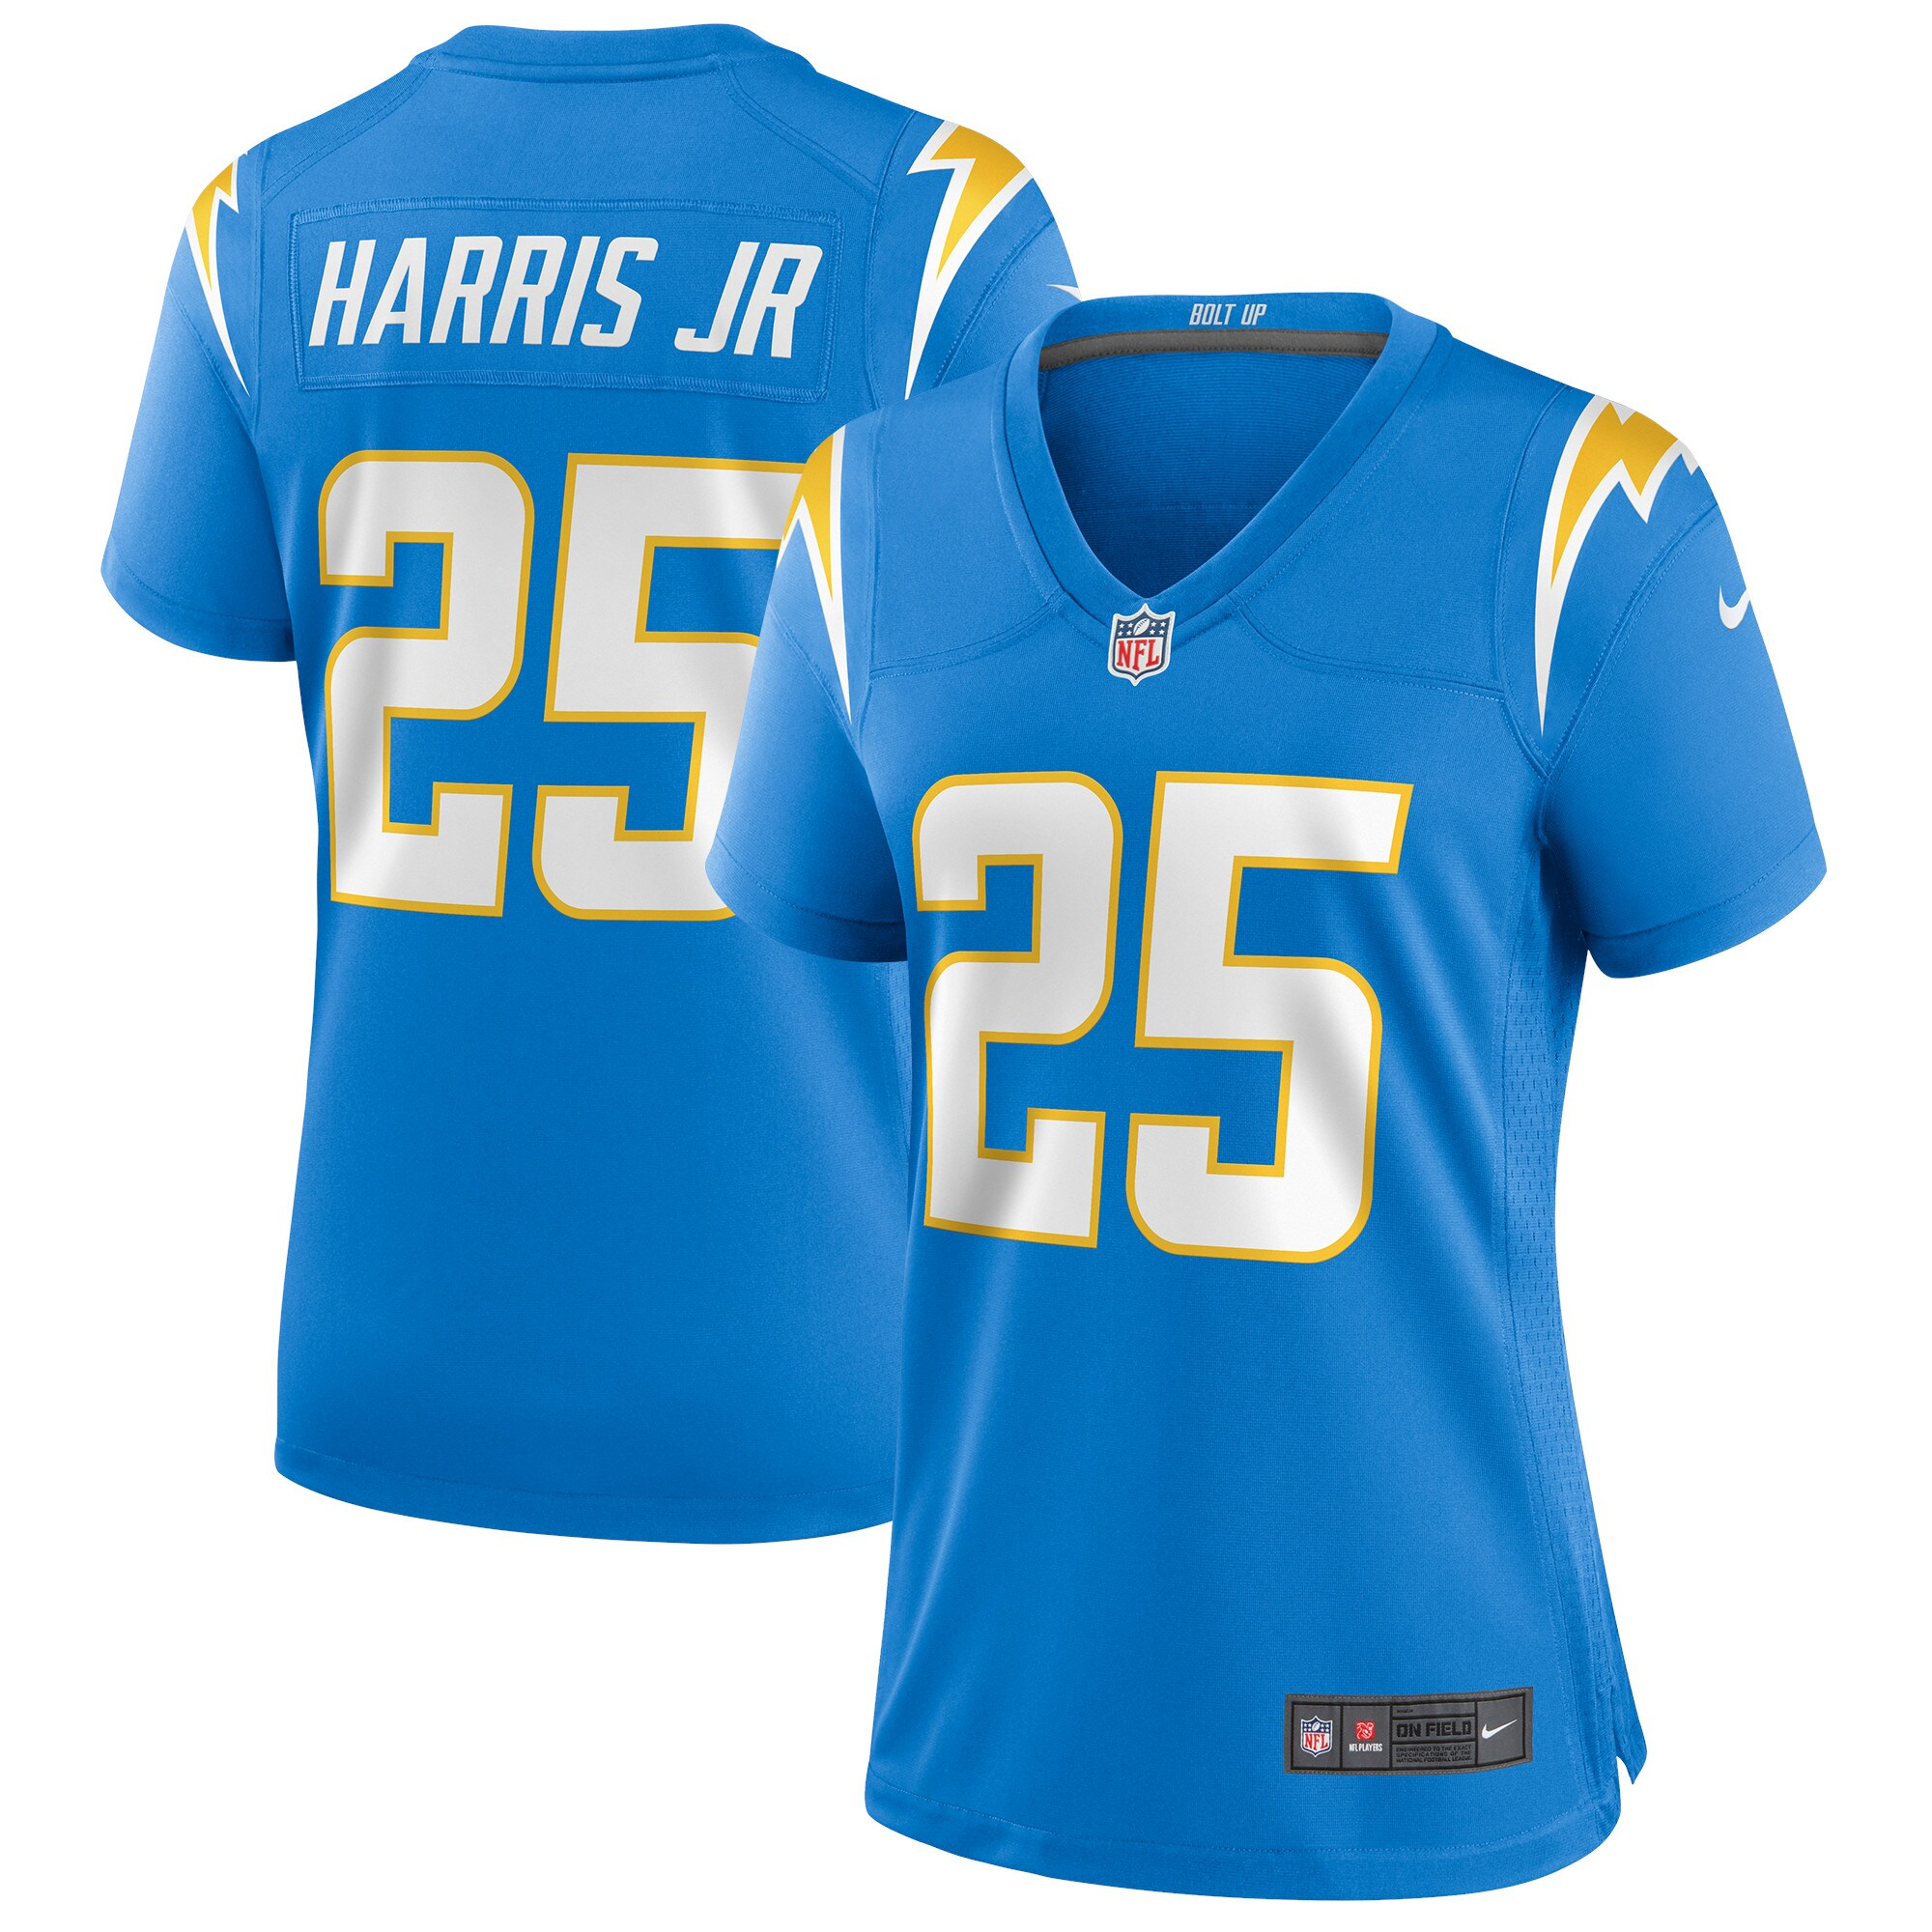 Chris Harris Jr. Los Angeles Chargers Nike Women's Game Jersey - Powder Blue